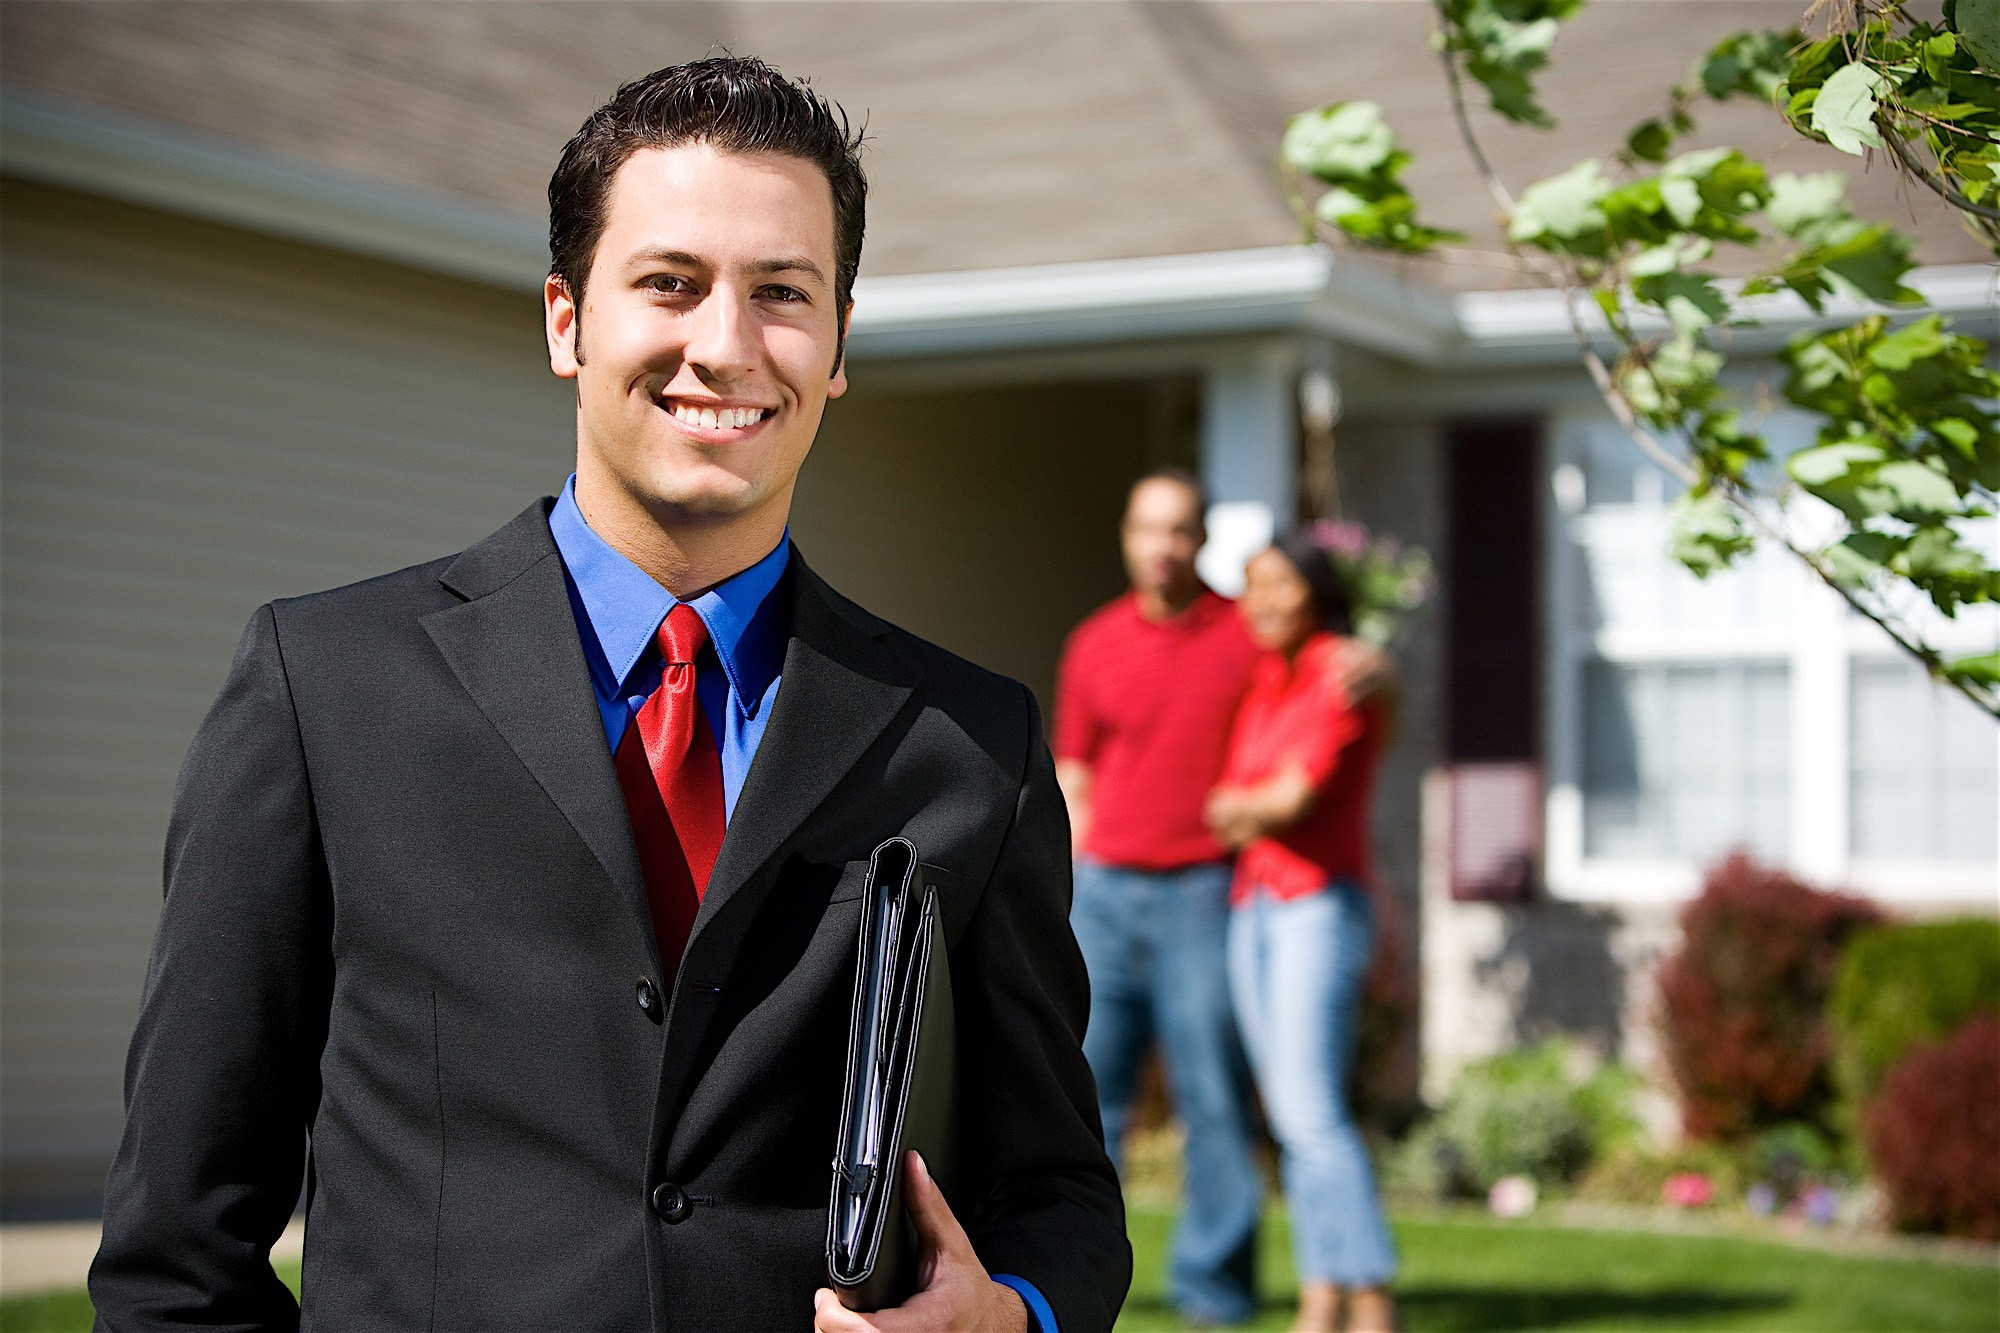 Top 5 strategies to find the right property manager